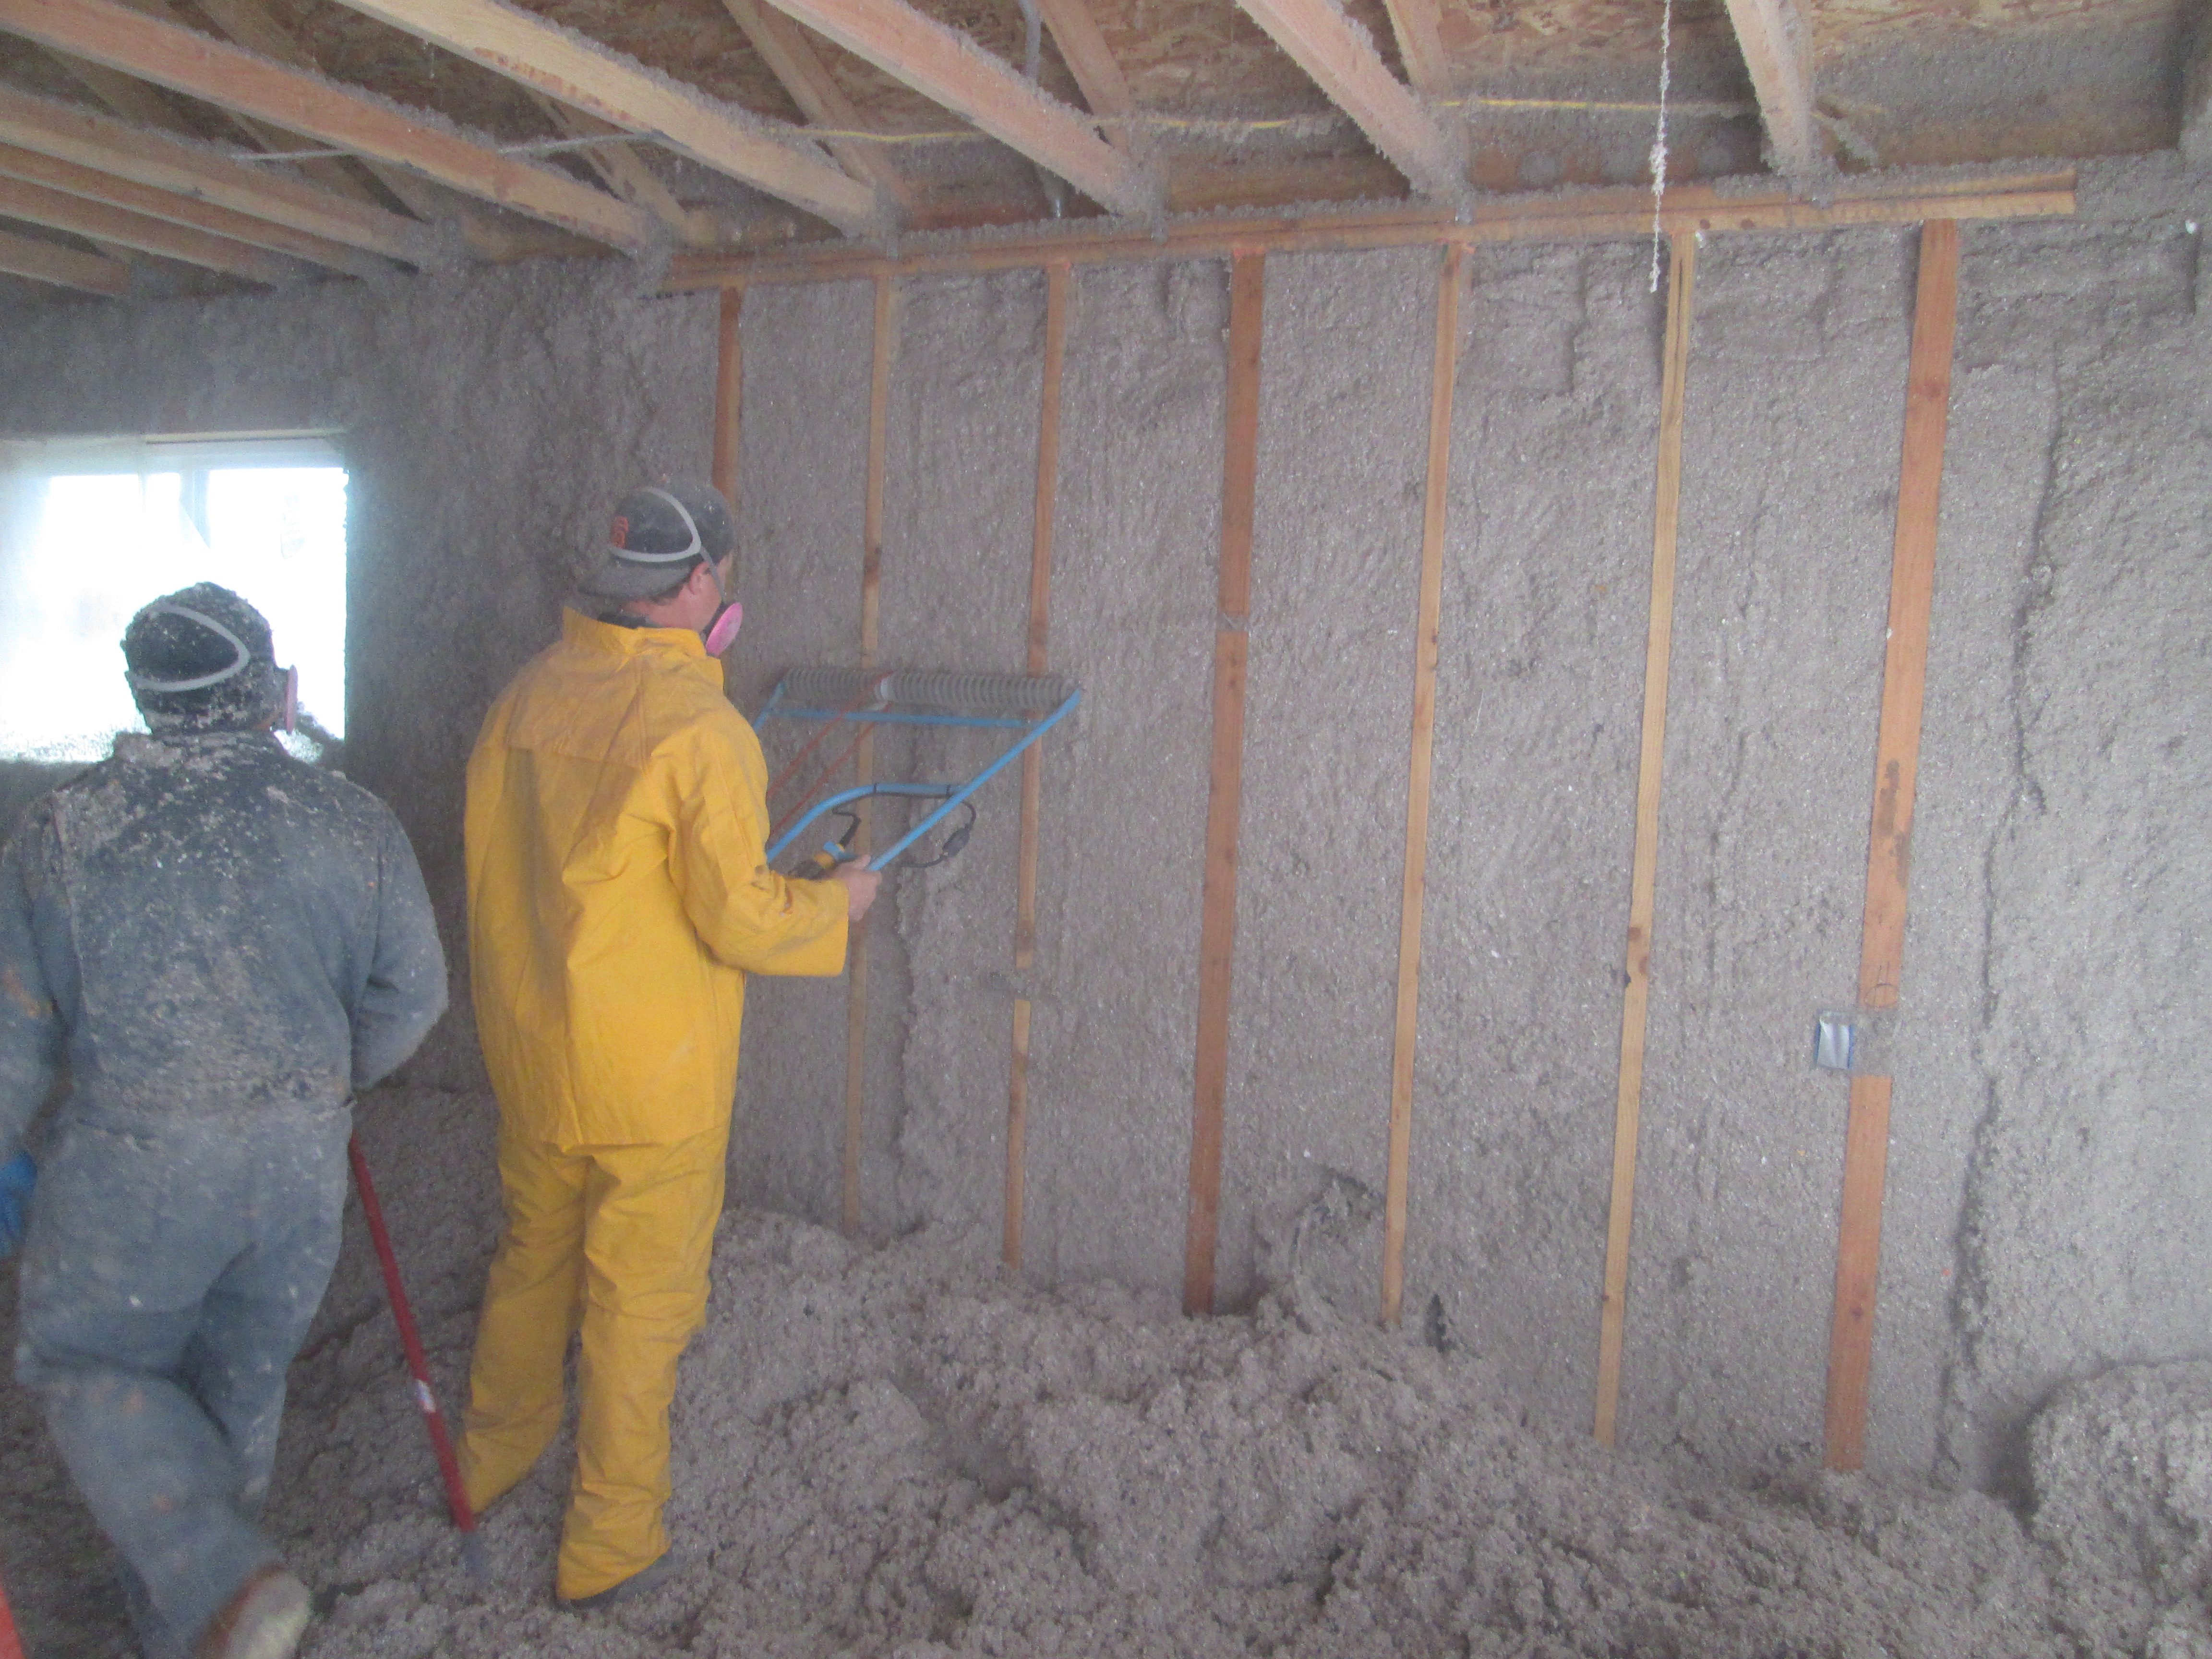 Wall Insulation Installation Video Net Zero Energy Eco